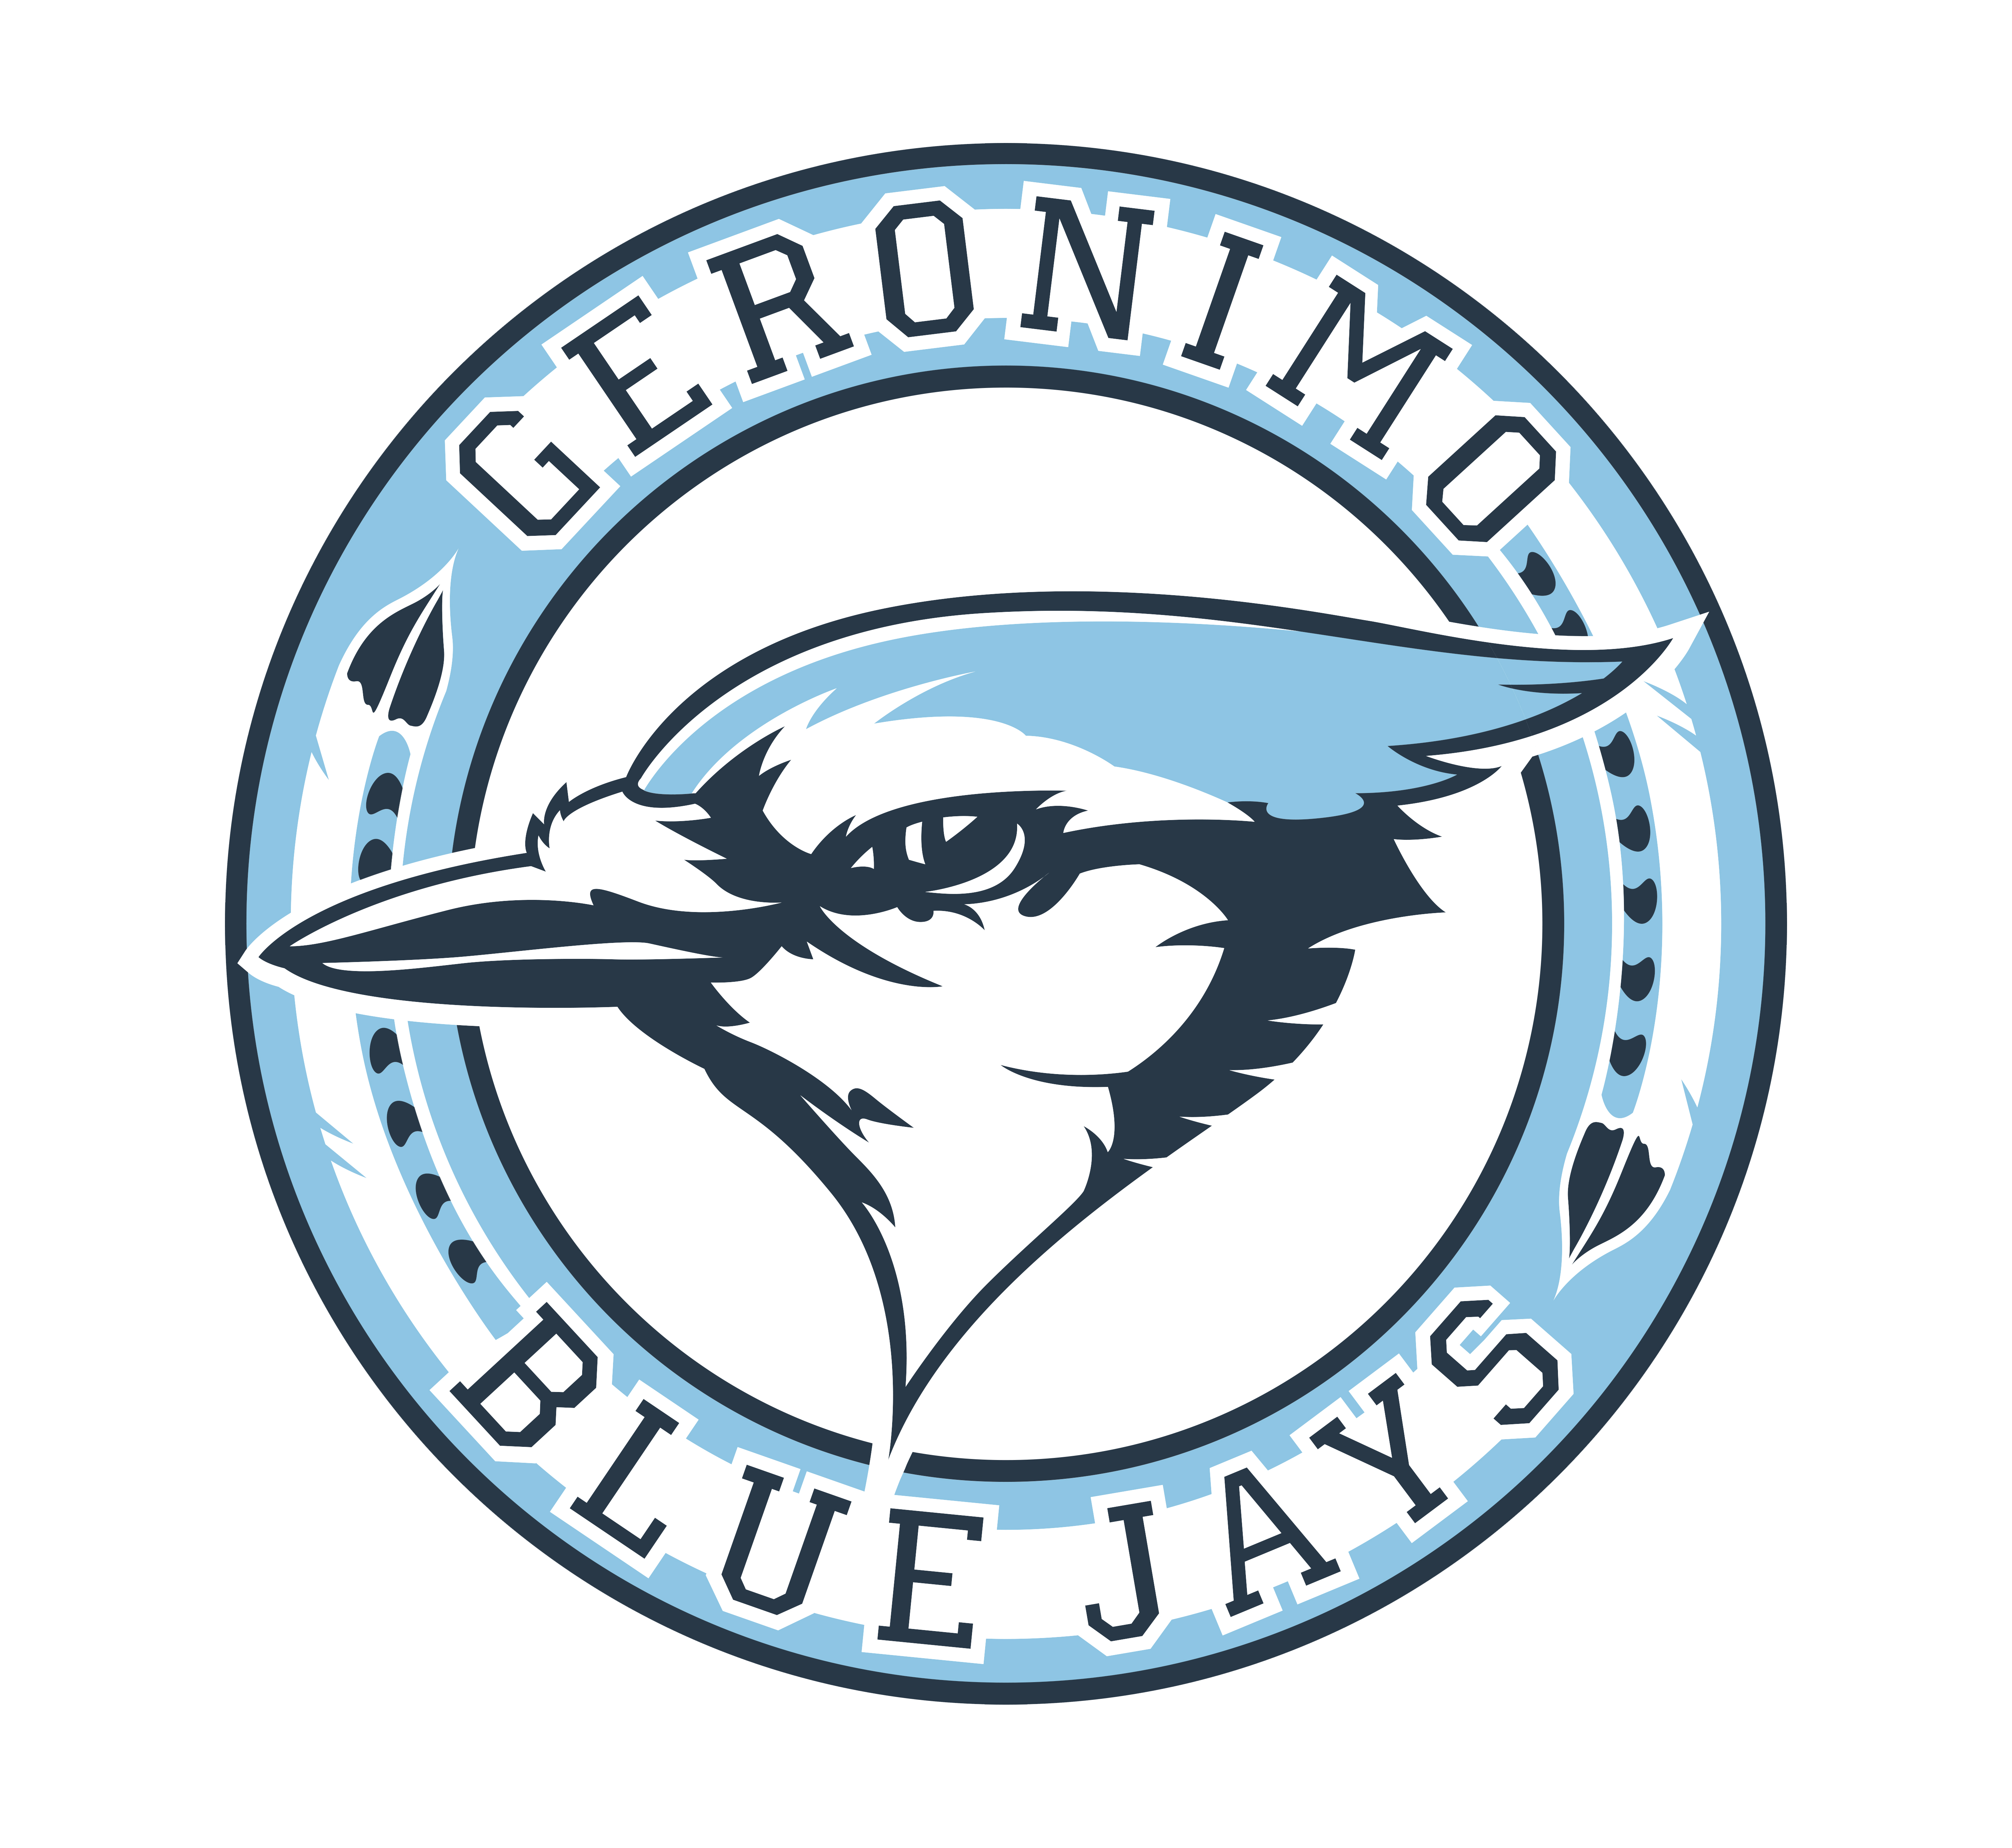 Geronimo - Team Home Geronimo Bluejays Sports picture black and white